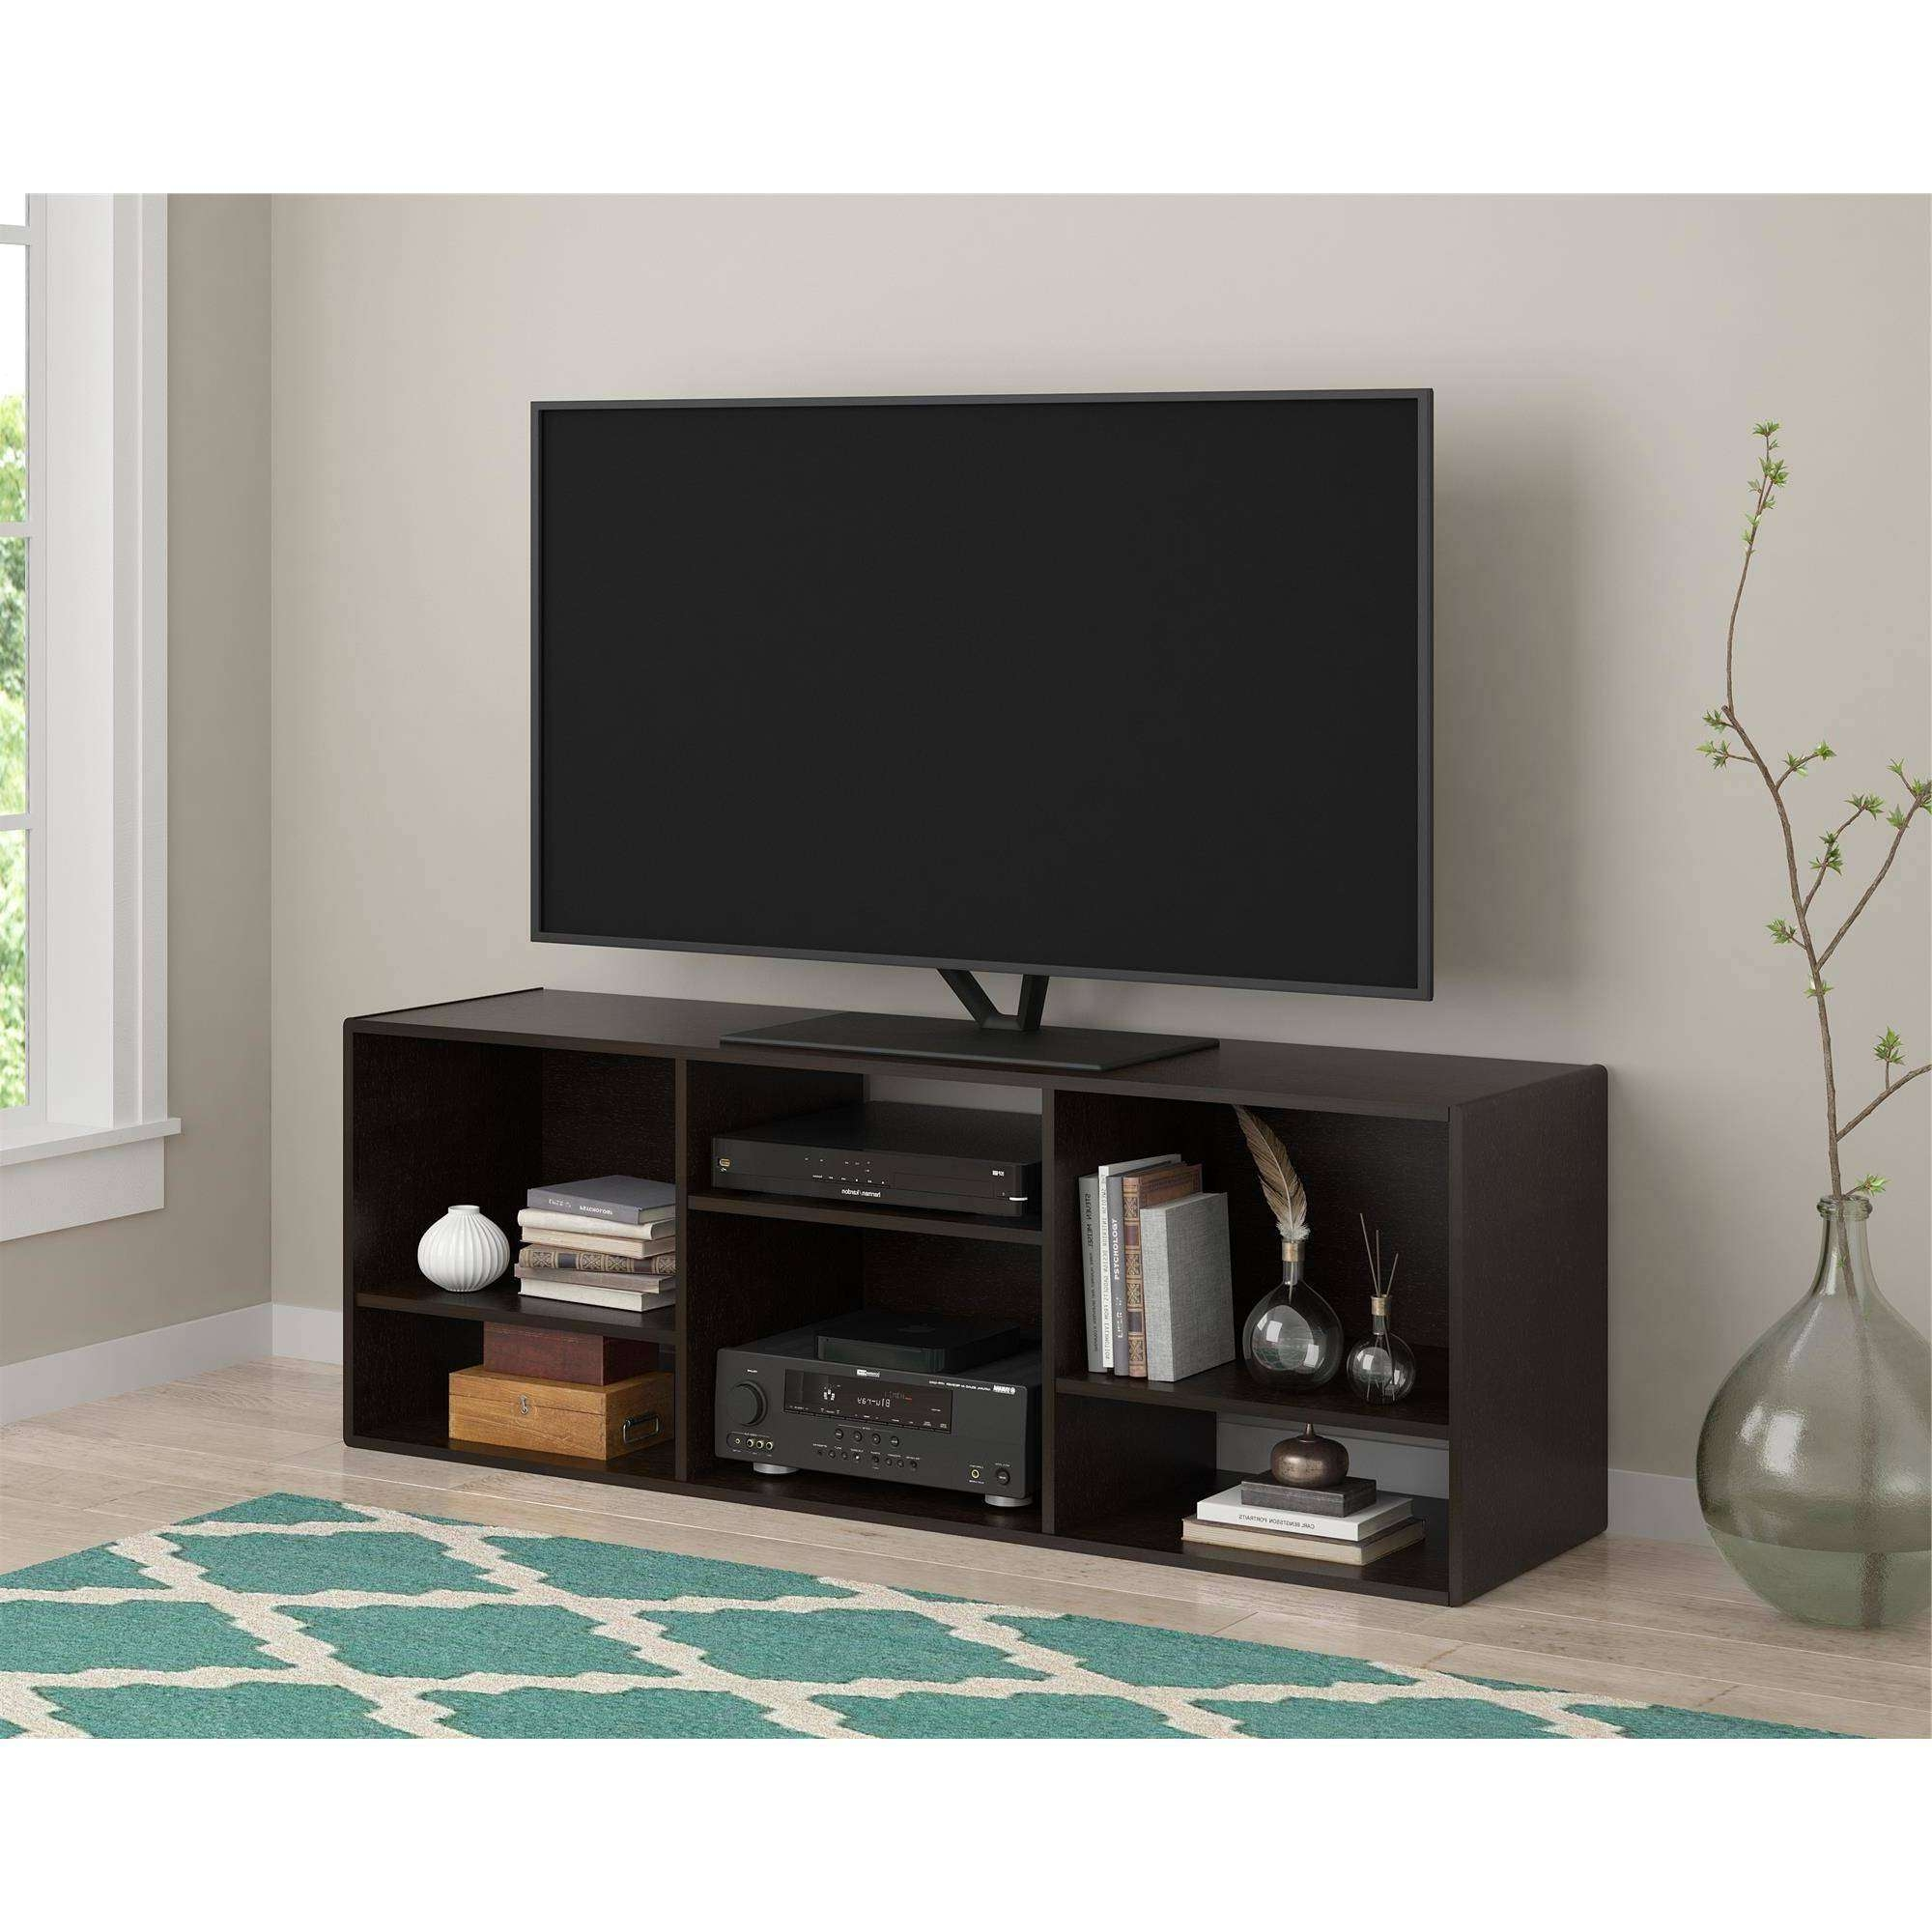 Tv : Amazing Tv Stands For Plasma Tv Mount It Tv Stand With Mount With Tv Stands For Plasma Tv (View 9 of 15)